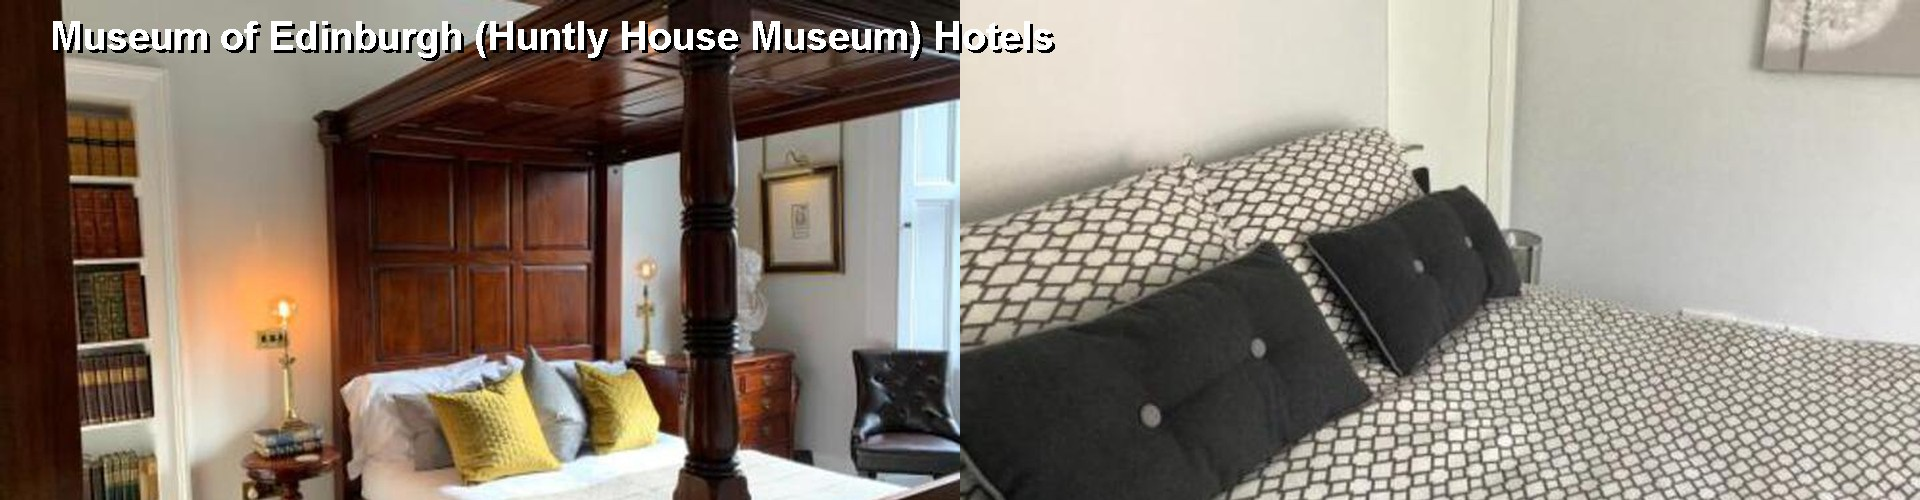 5 Best Hotels near Museum of Edinburgh (Huntly House Museum)